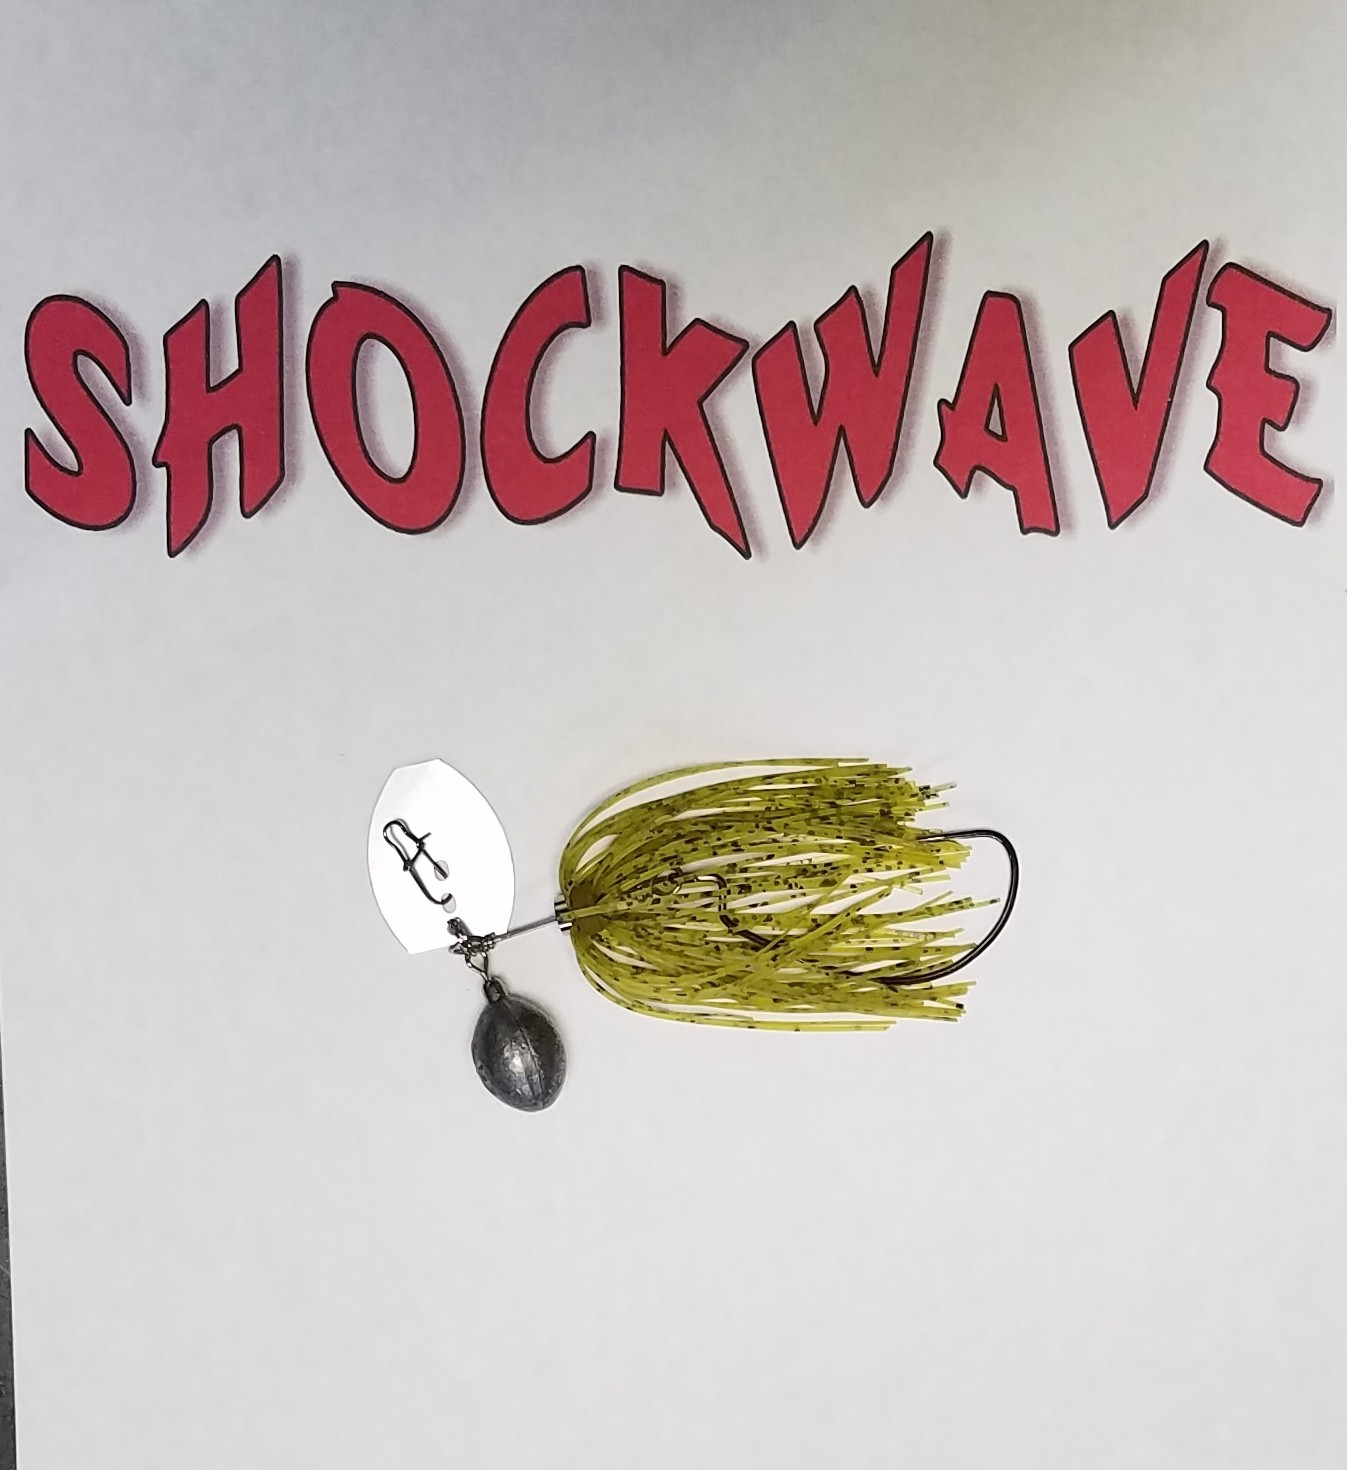 "The SHOCKWAVE has an added feature that NO other ChatterBait or bladed swim jig on the market can do... Change the weight of the lure on the fly! Keep a set of ""Shockweights"" in your tackle bag and you can vary the weight of your SHOCKWAVE from 3/8oz to 1.5oz. Allowing your to target fish at a specific depth in the water column. Made in America #shockwave #bass #bassfishing #flw #wonbass #chatterbait #bladedswimjig #bassmaster #shockweights"